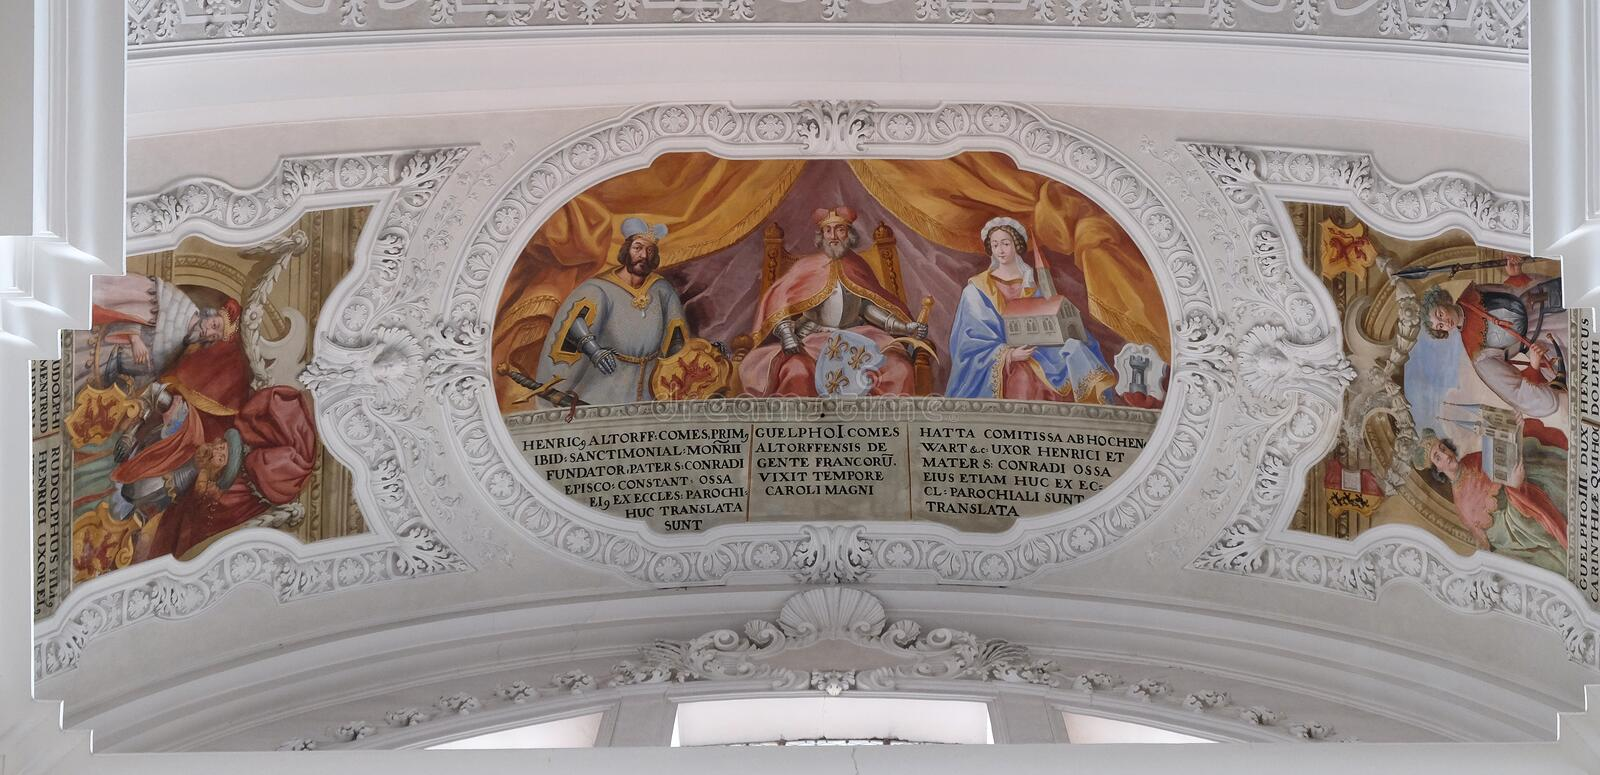 Heinrich, Count of Altdorf, Welf I, Ata von Hohenwart fresco in the Basilica of St. Martin and Oswald in Weingarten, Germany. Heinrich, Count of Altdorf, Welf I royalty free stock photography